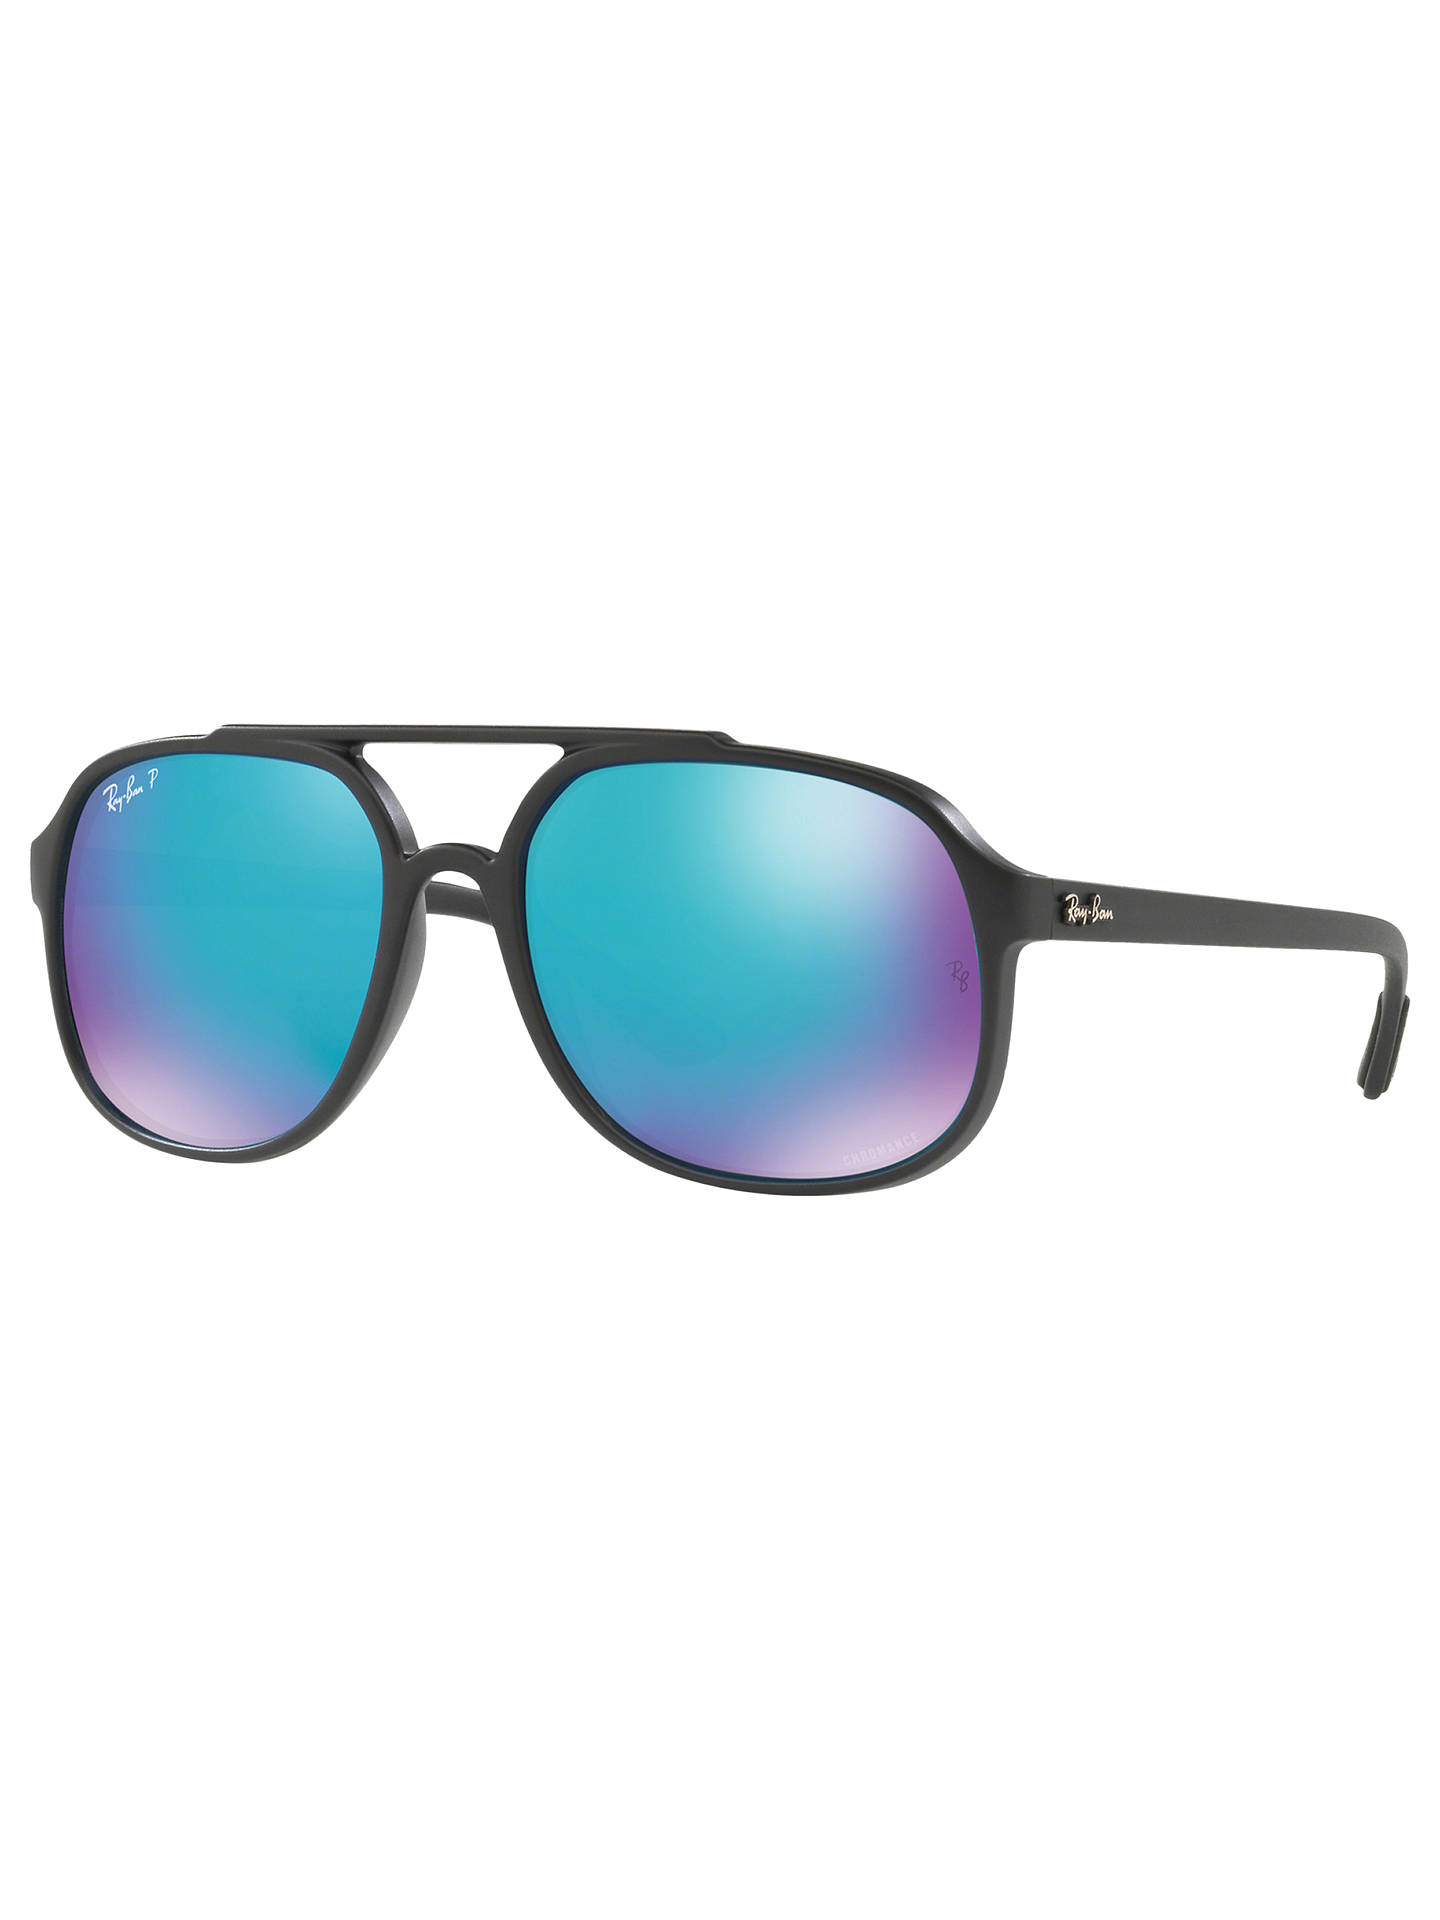 BuyRay-Ban RB4312 Men's Square Sunglasses, Black Online at johnlewis.com